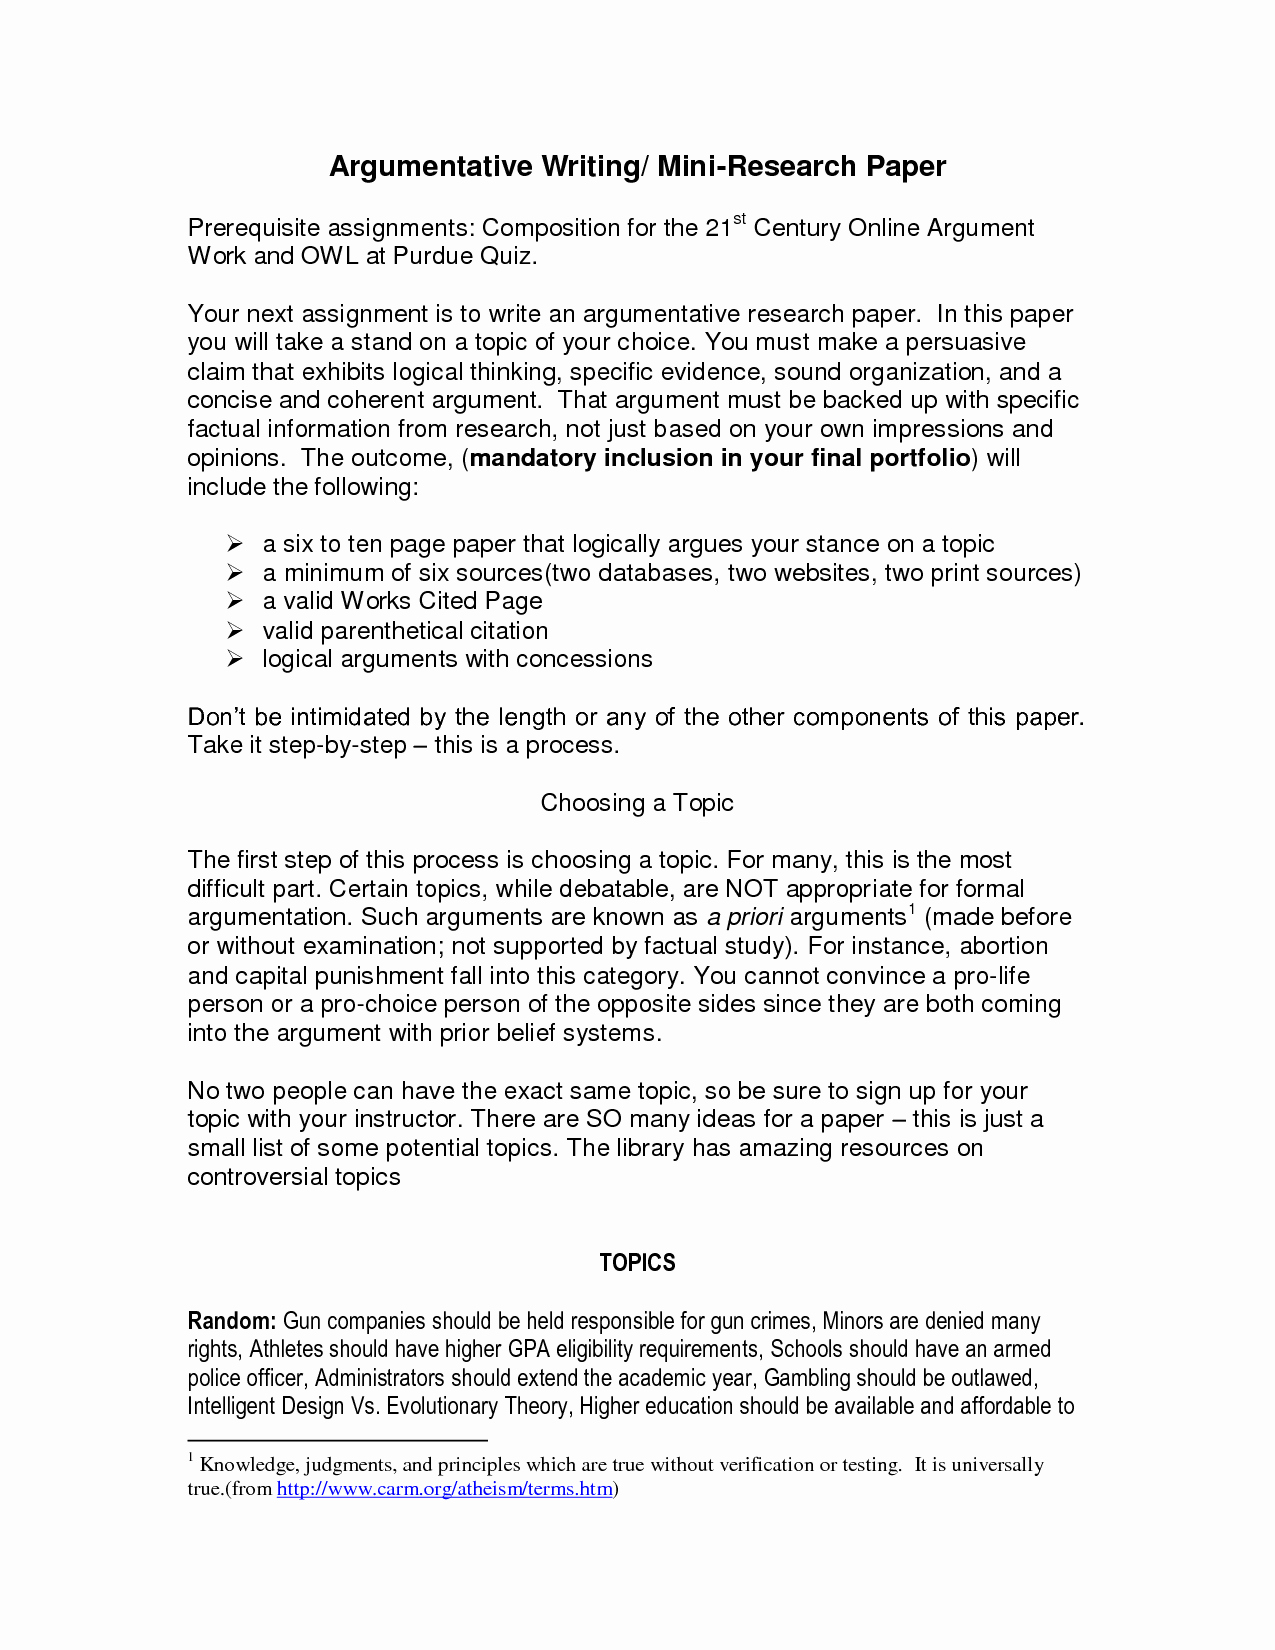 Identifying thesis Statement Worksheet Unique Examples Of thesis Statement for Research Paper